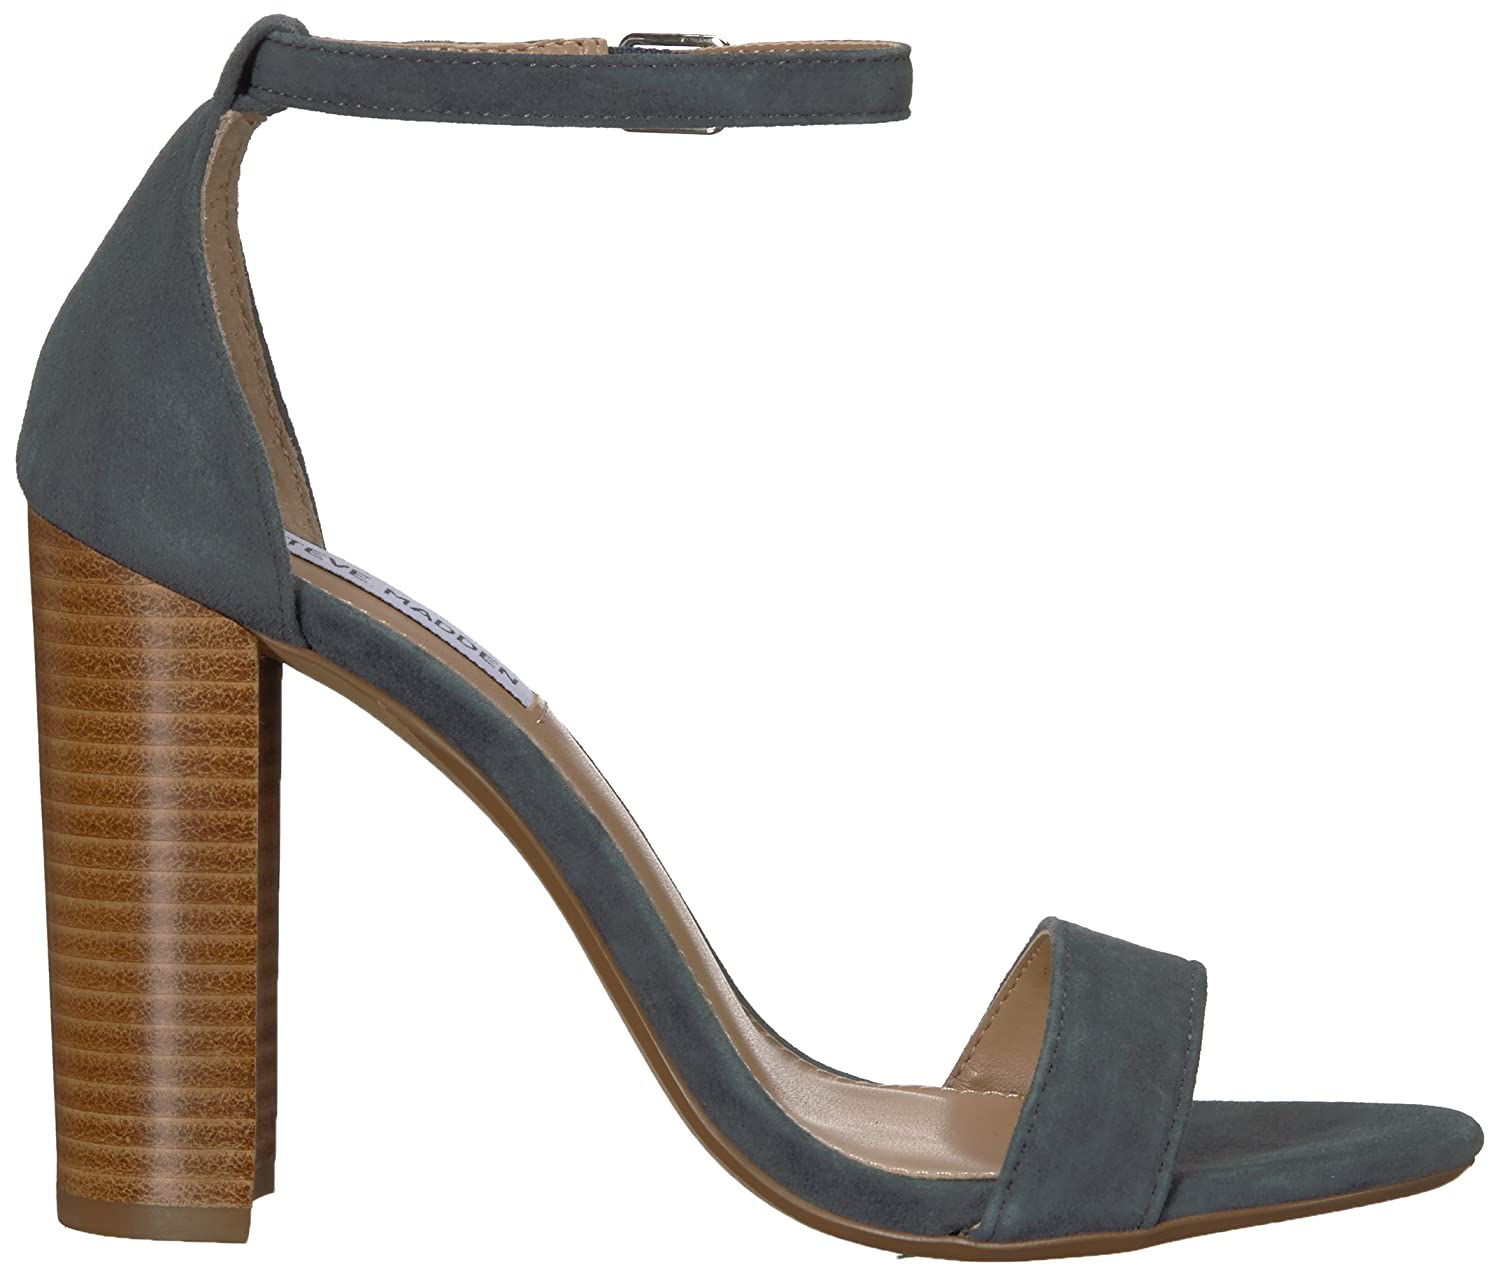 Steve Madden Women's Carrson Dress Sandal B07BLZ7W56 7.5 B(M) US|Blue/Multi